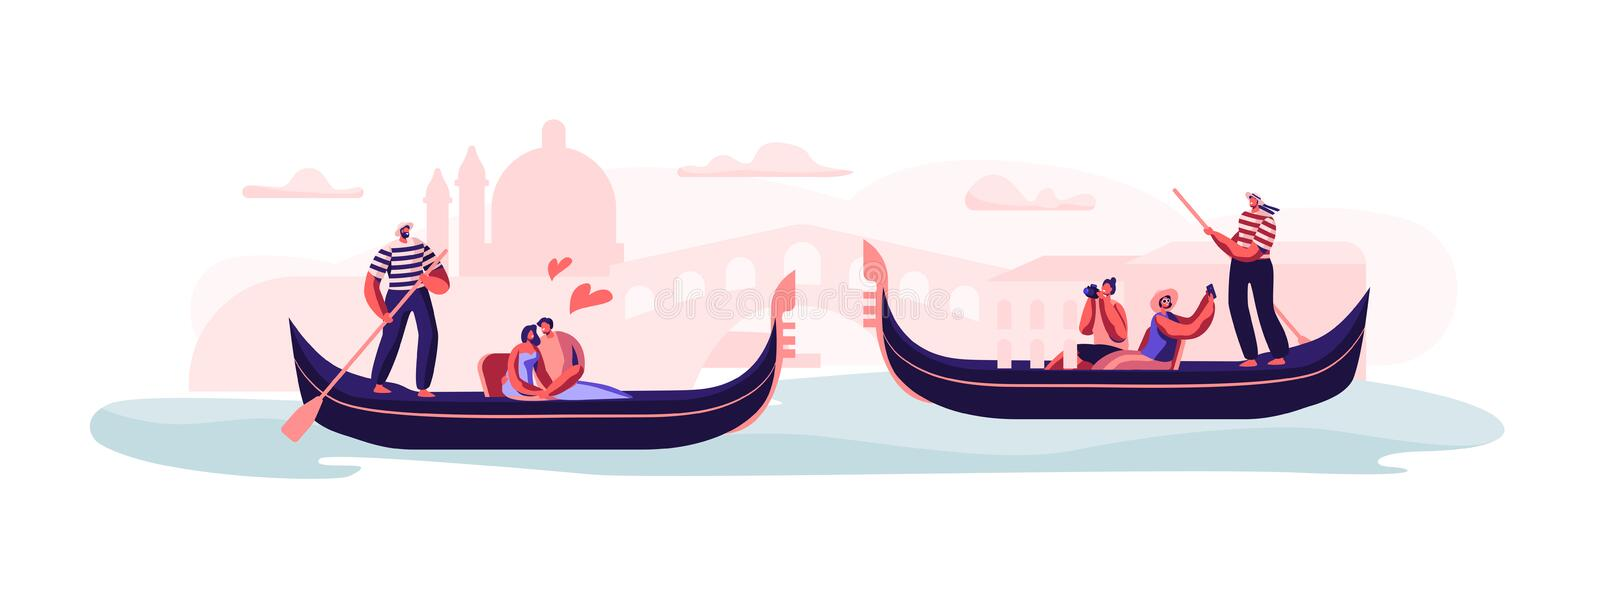 Love in Venice. Happy Loving Couples Sitting in Gondolas with Gondoliers Floating at Canal, Hugging, Making Photo of Sightseeing. Taking Trip or Romantic Tour royalty free illustration